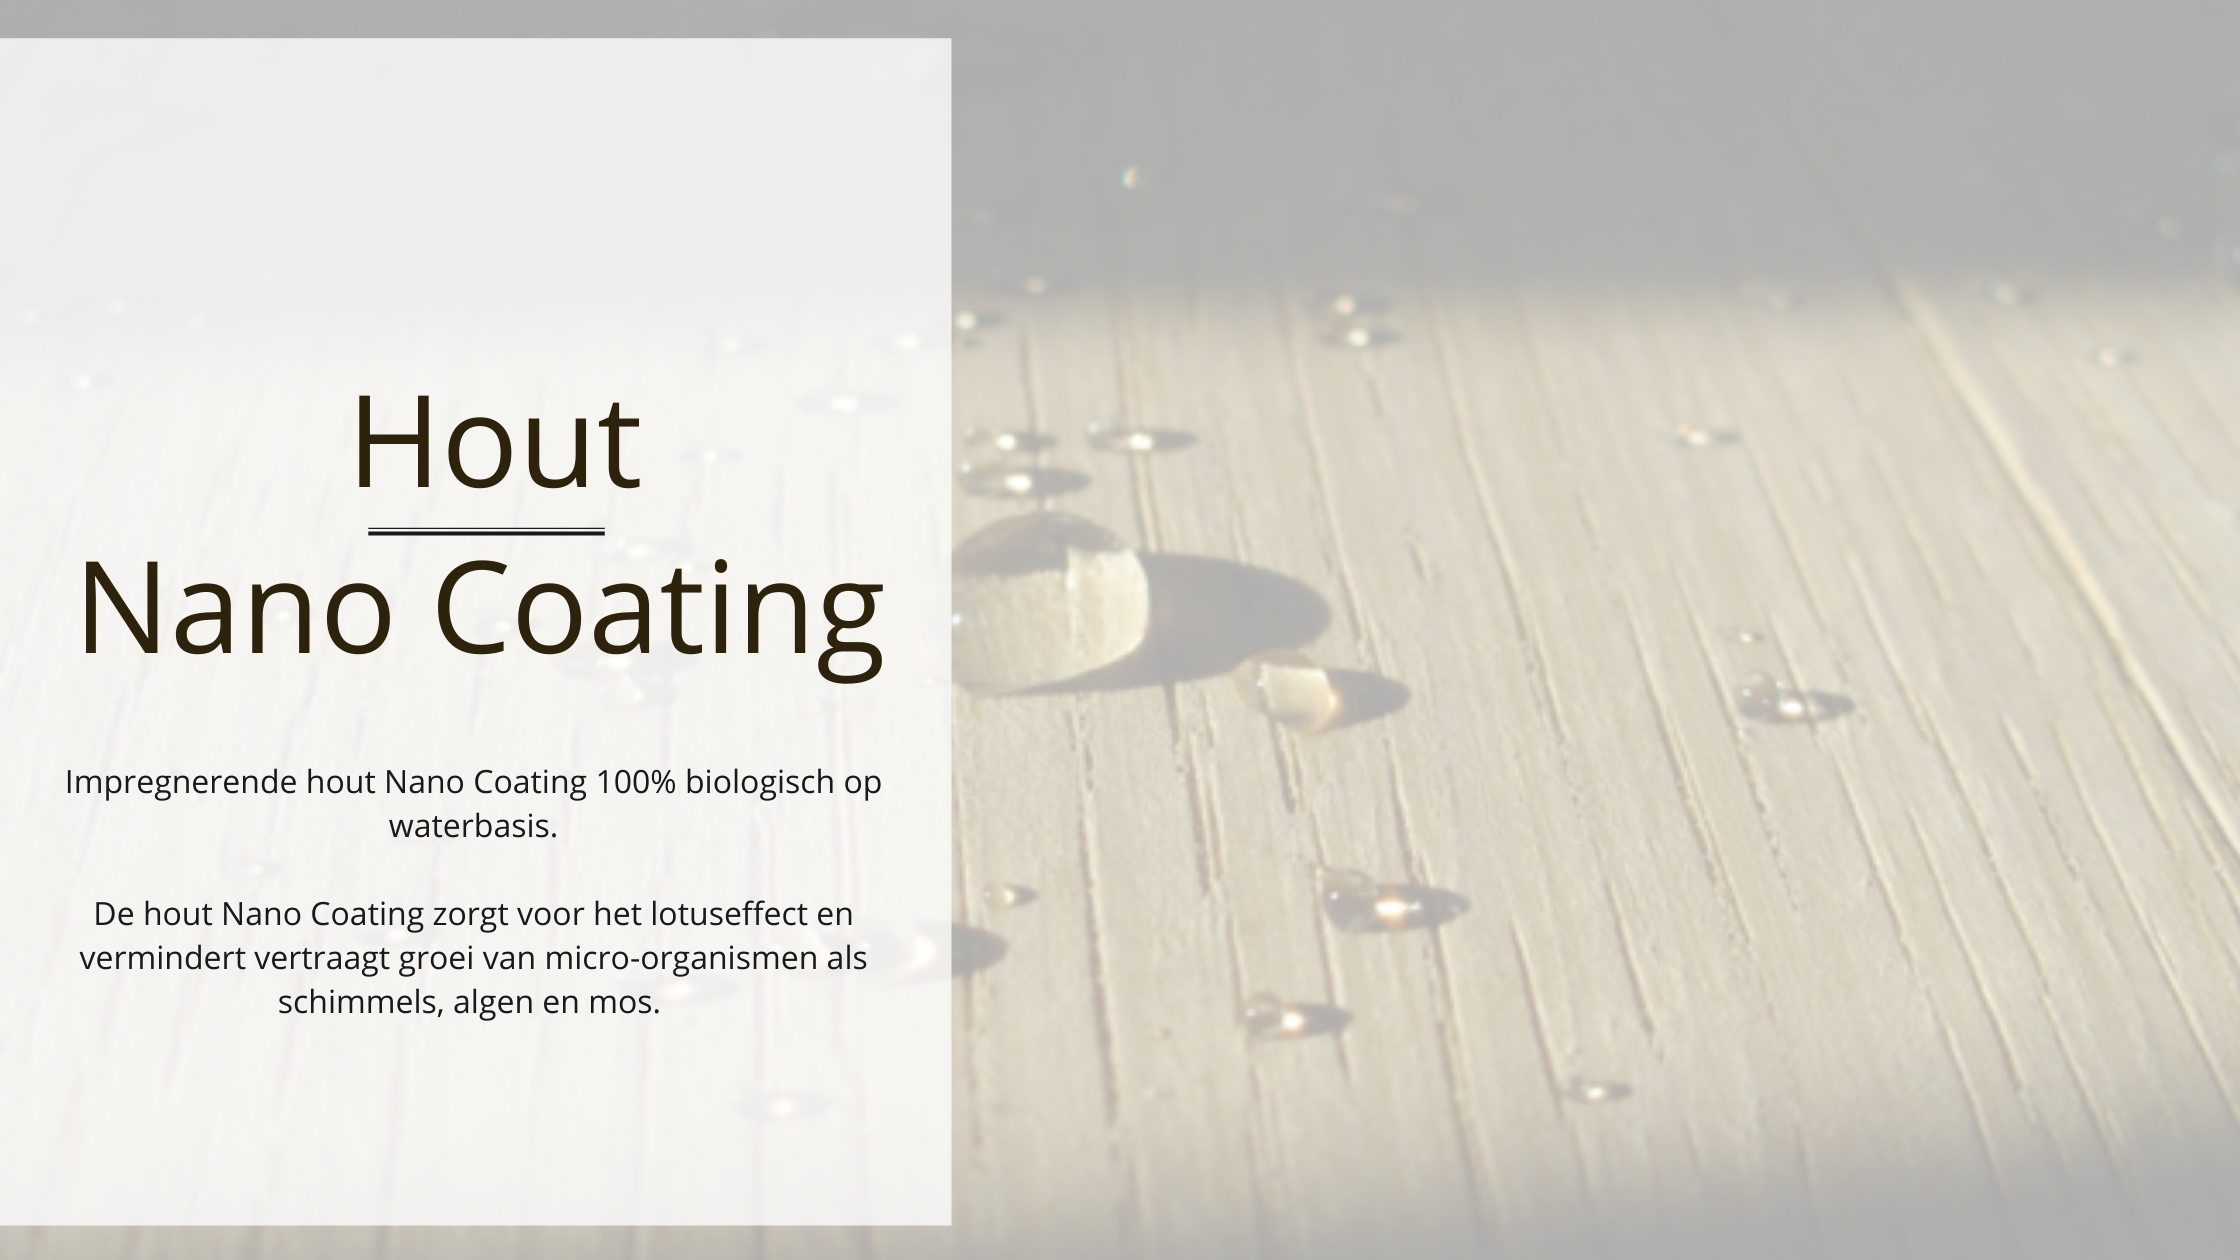 Hout Nano Coating